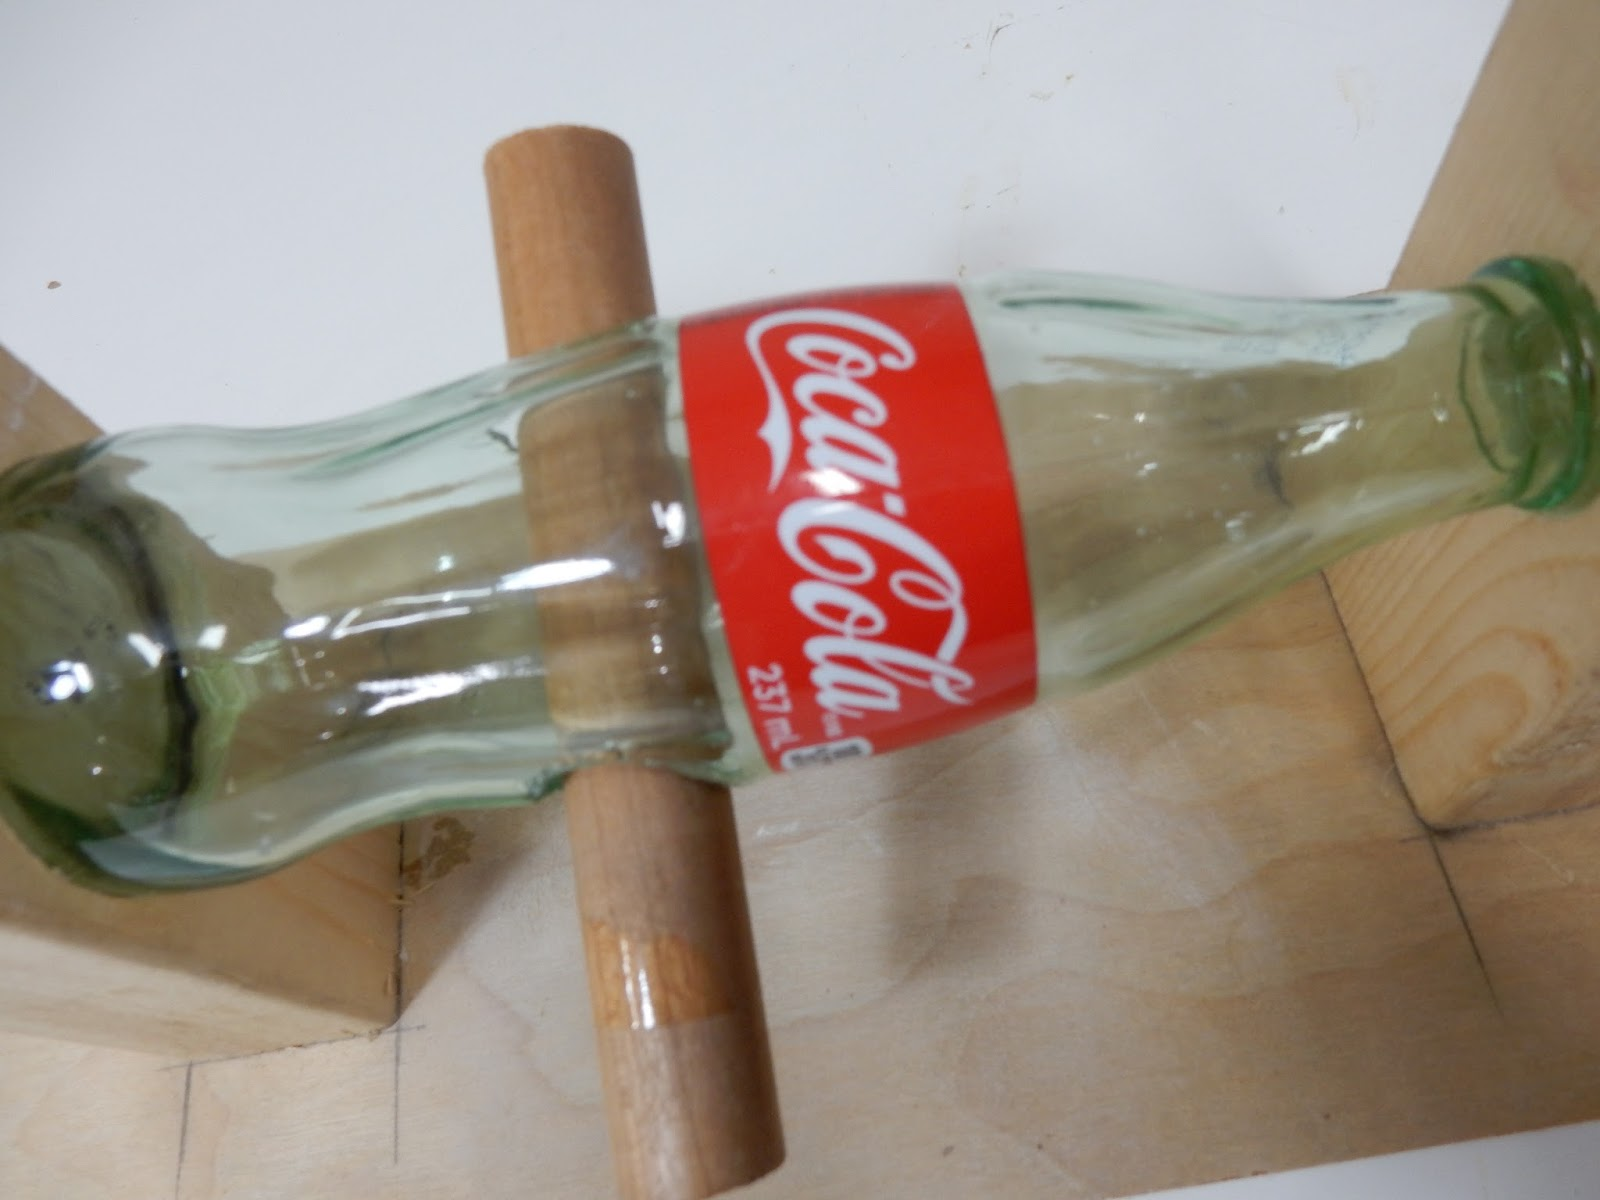 Jax design how to drill holes in glass for Best way to drill glass bottle